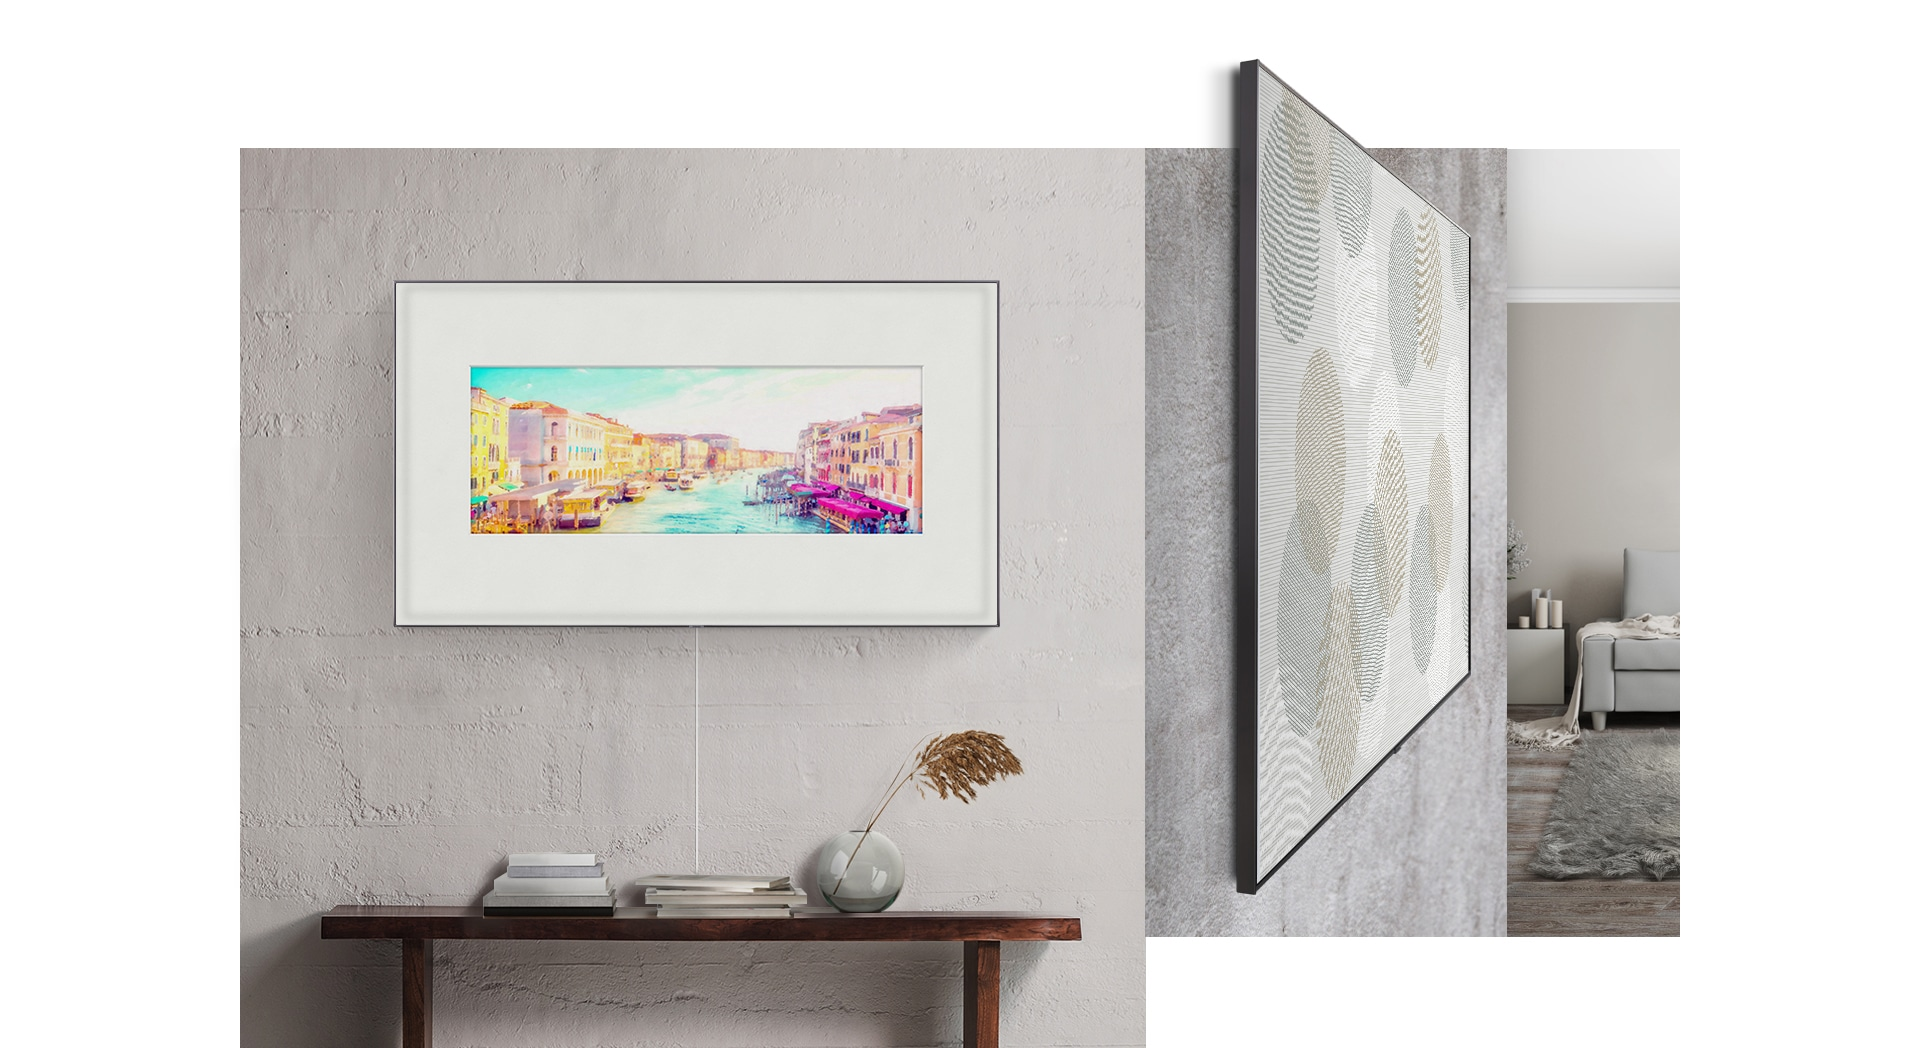 A 2019 QLED TV with Samsung one invisible connection hanging on the wall. Another QLED TV with a no Gap Wall-Mount is on, with Magic Screen for living room decor.